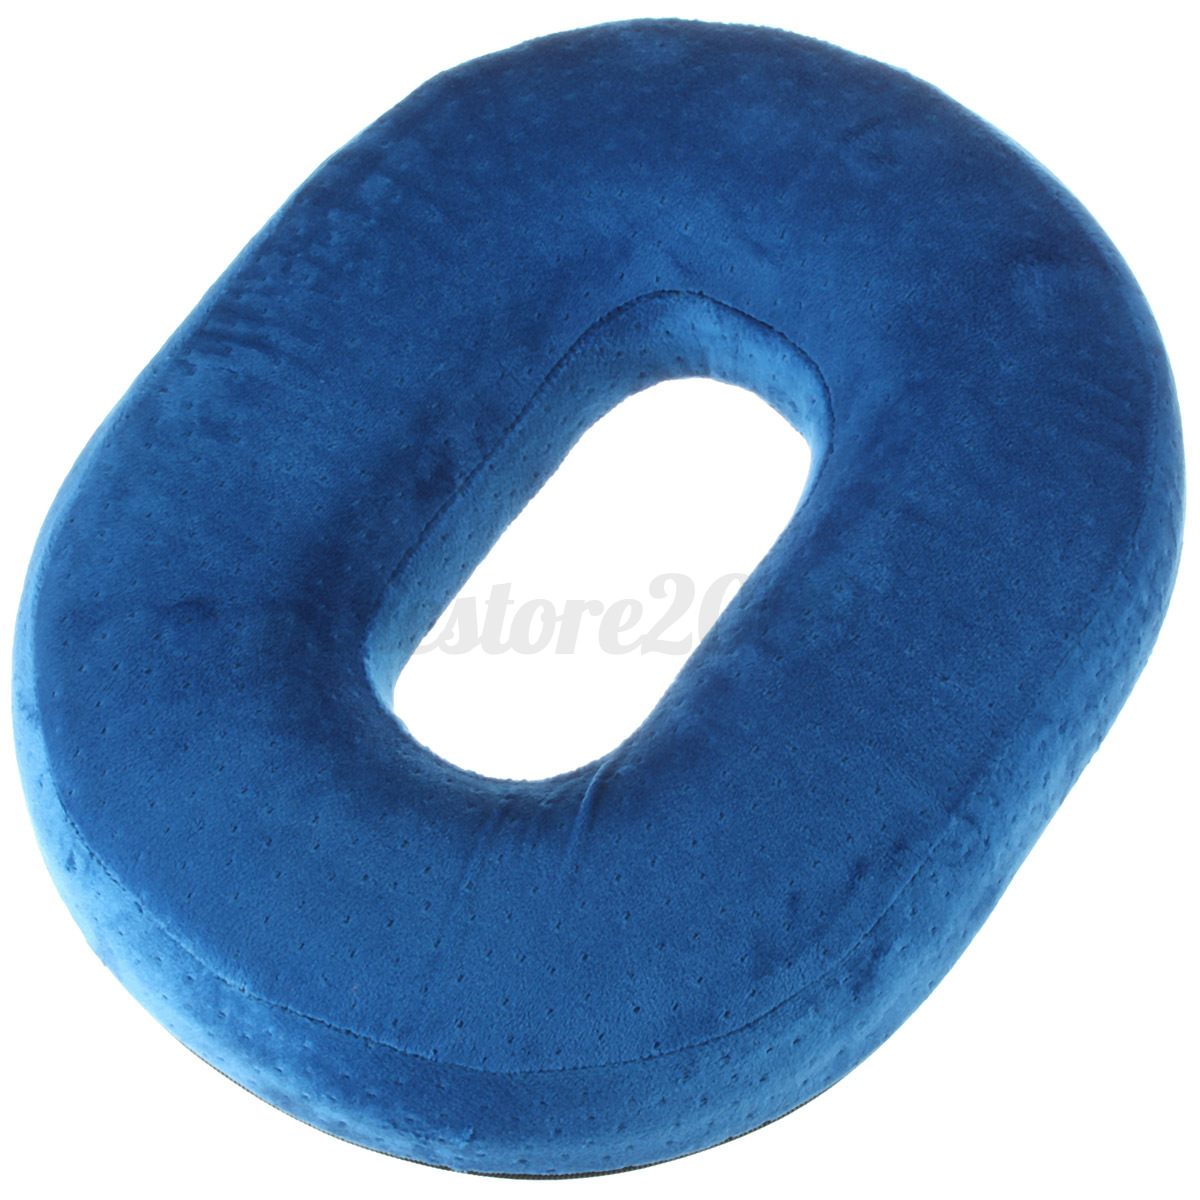 best office chair for hemorrhoids clear polycarbonate memory sponge foam ring cushion car seat travel